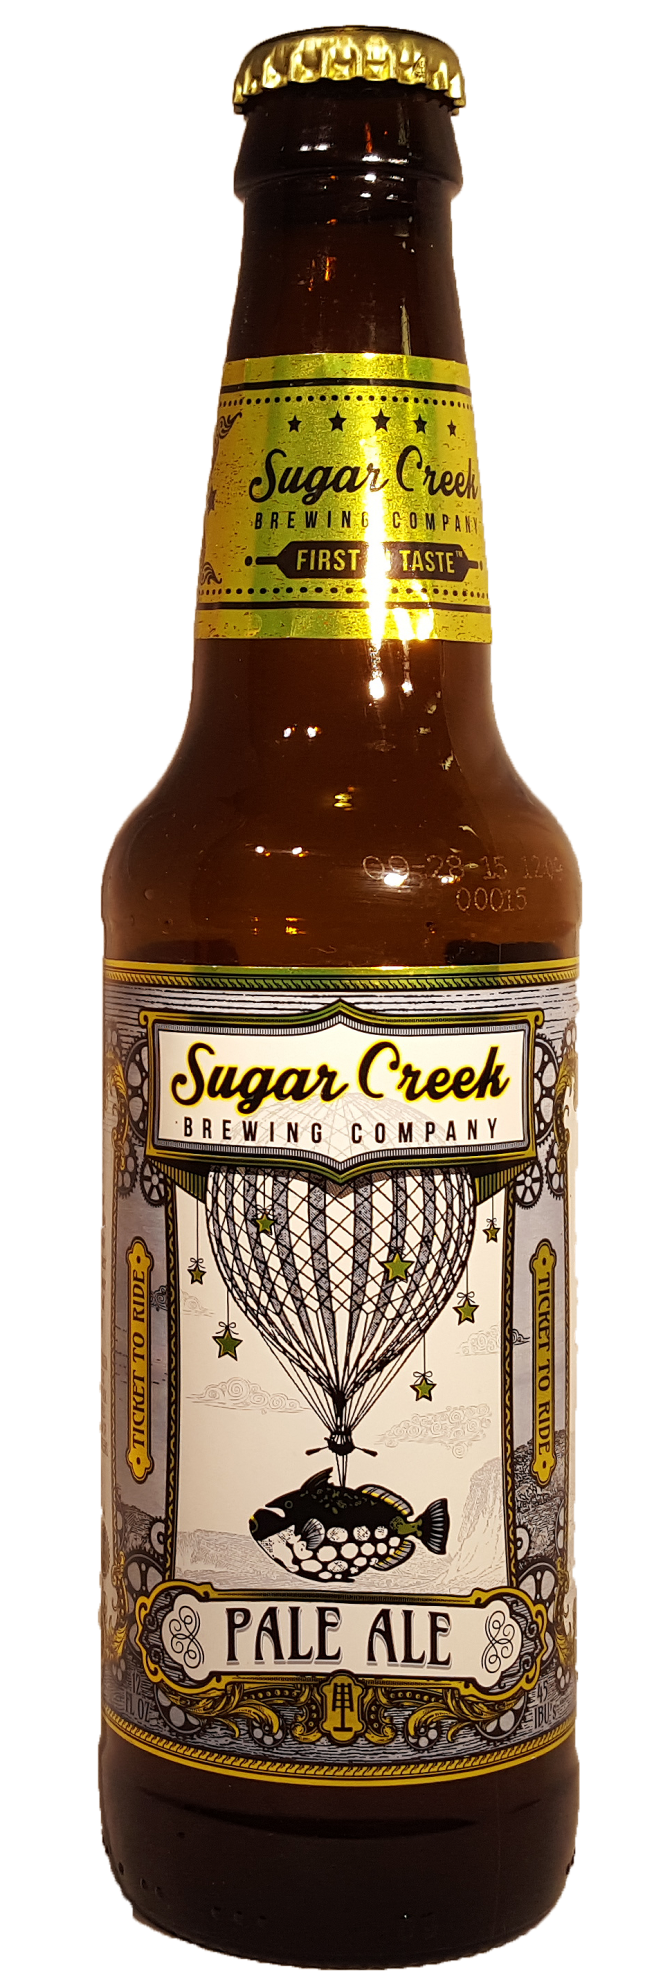 Pale Ale (Sugar Creek Brewing Company)